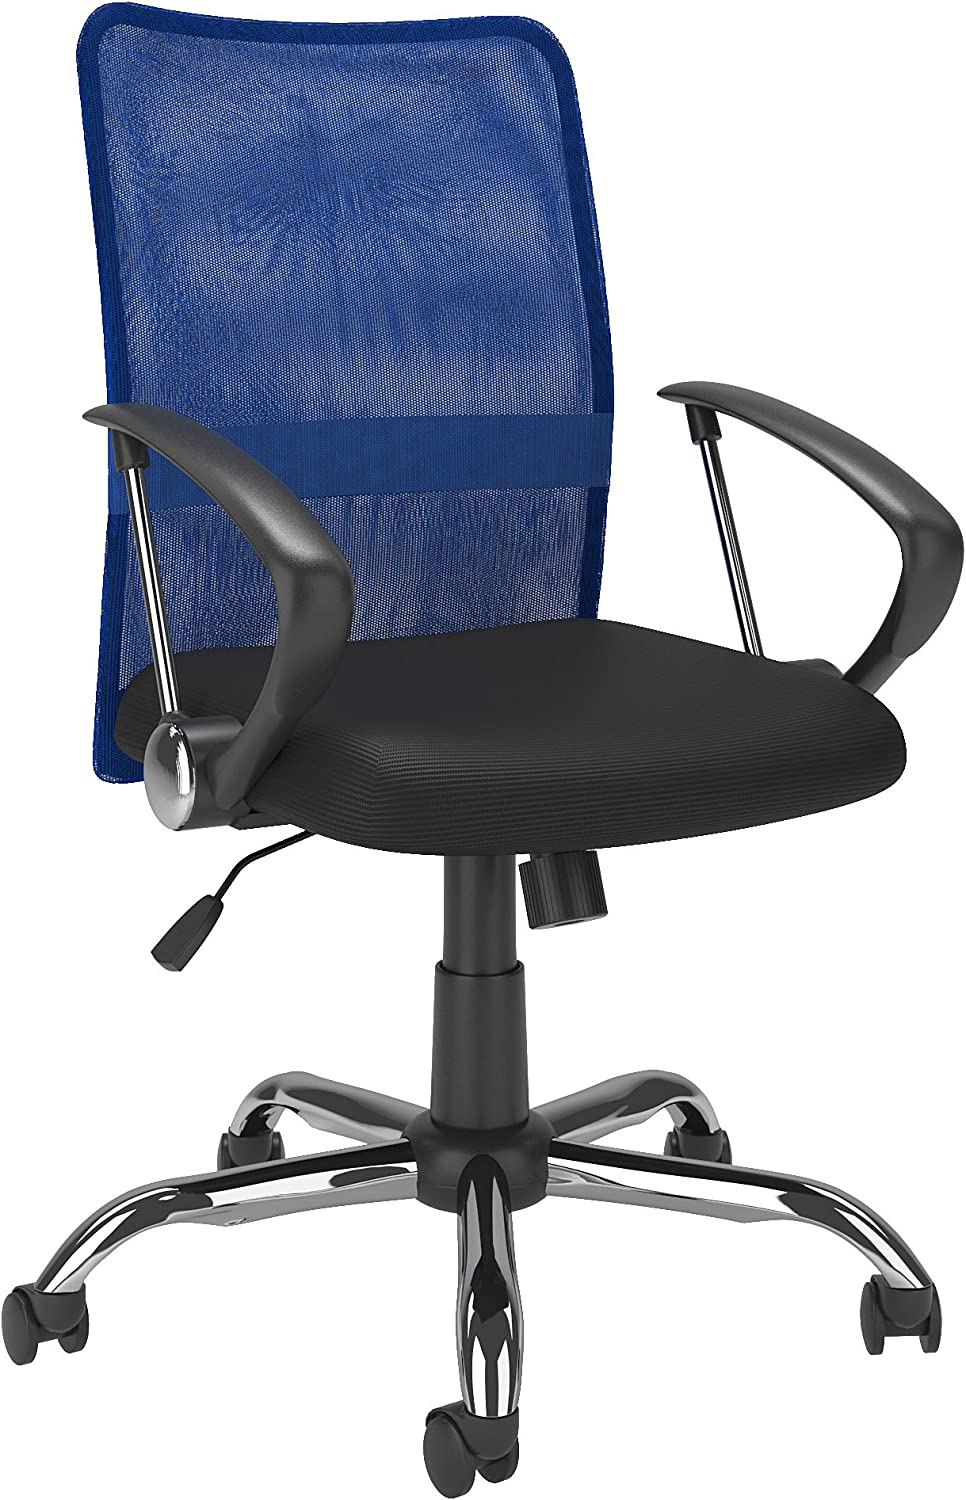 CorLiving WHL-718-C Office Chair, bluee